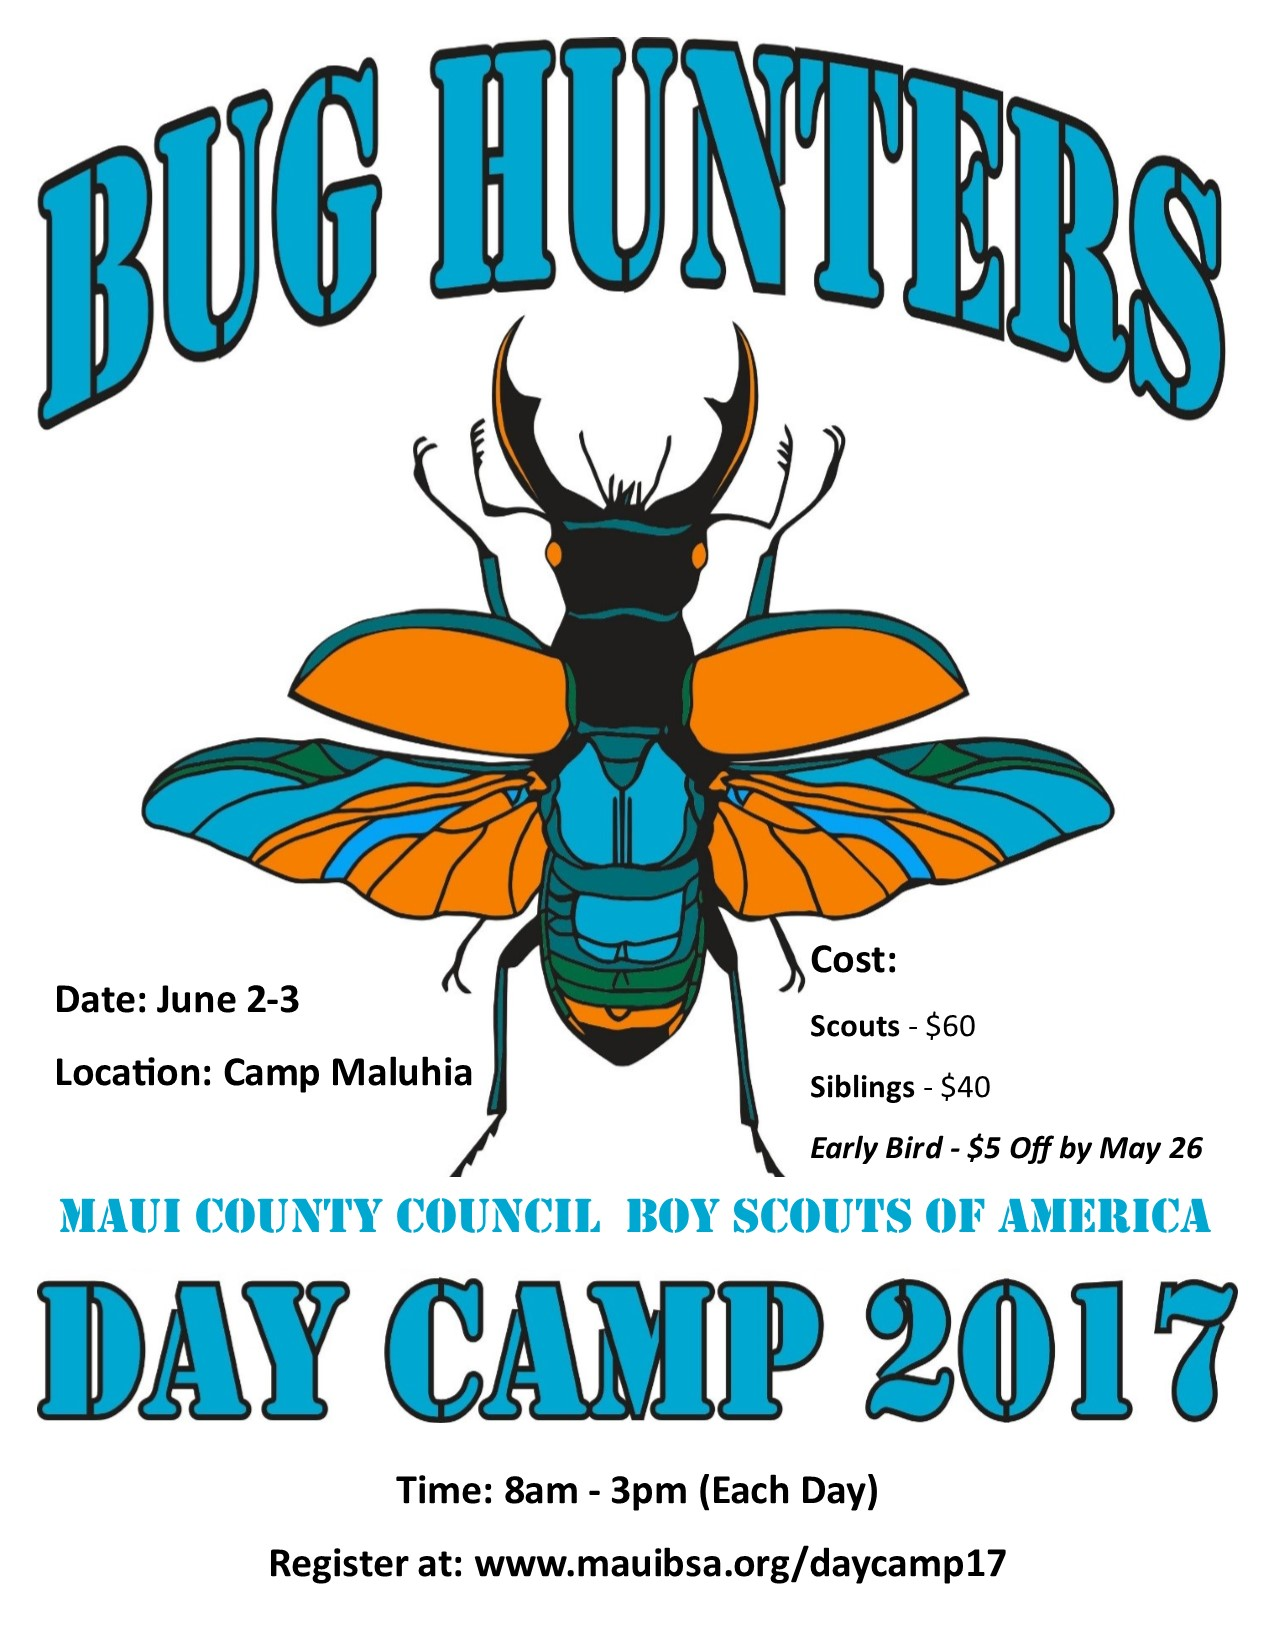 Cub Scout Day Camp Bug Hunters 2017 Registration – Boy Scout Medical Form